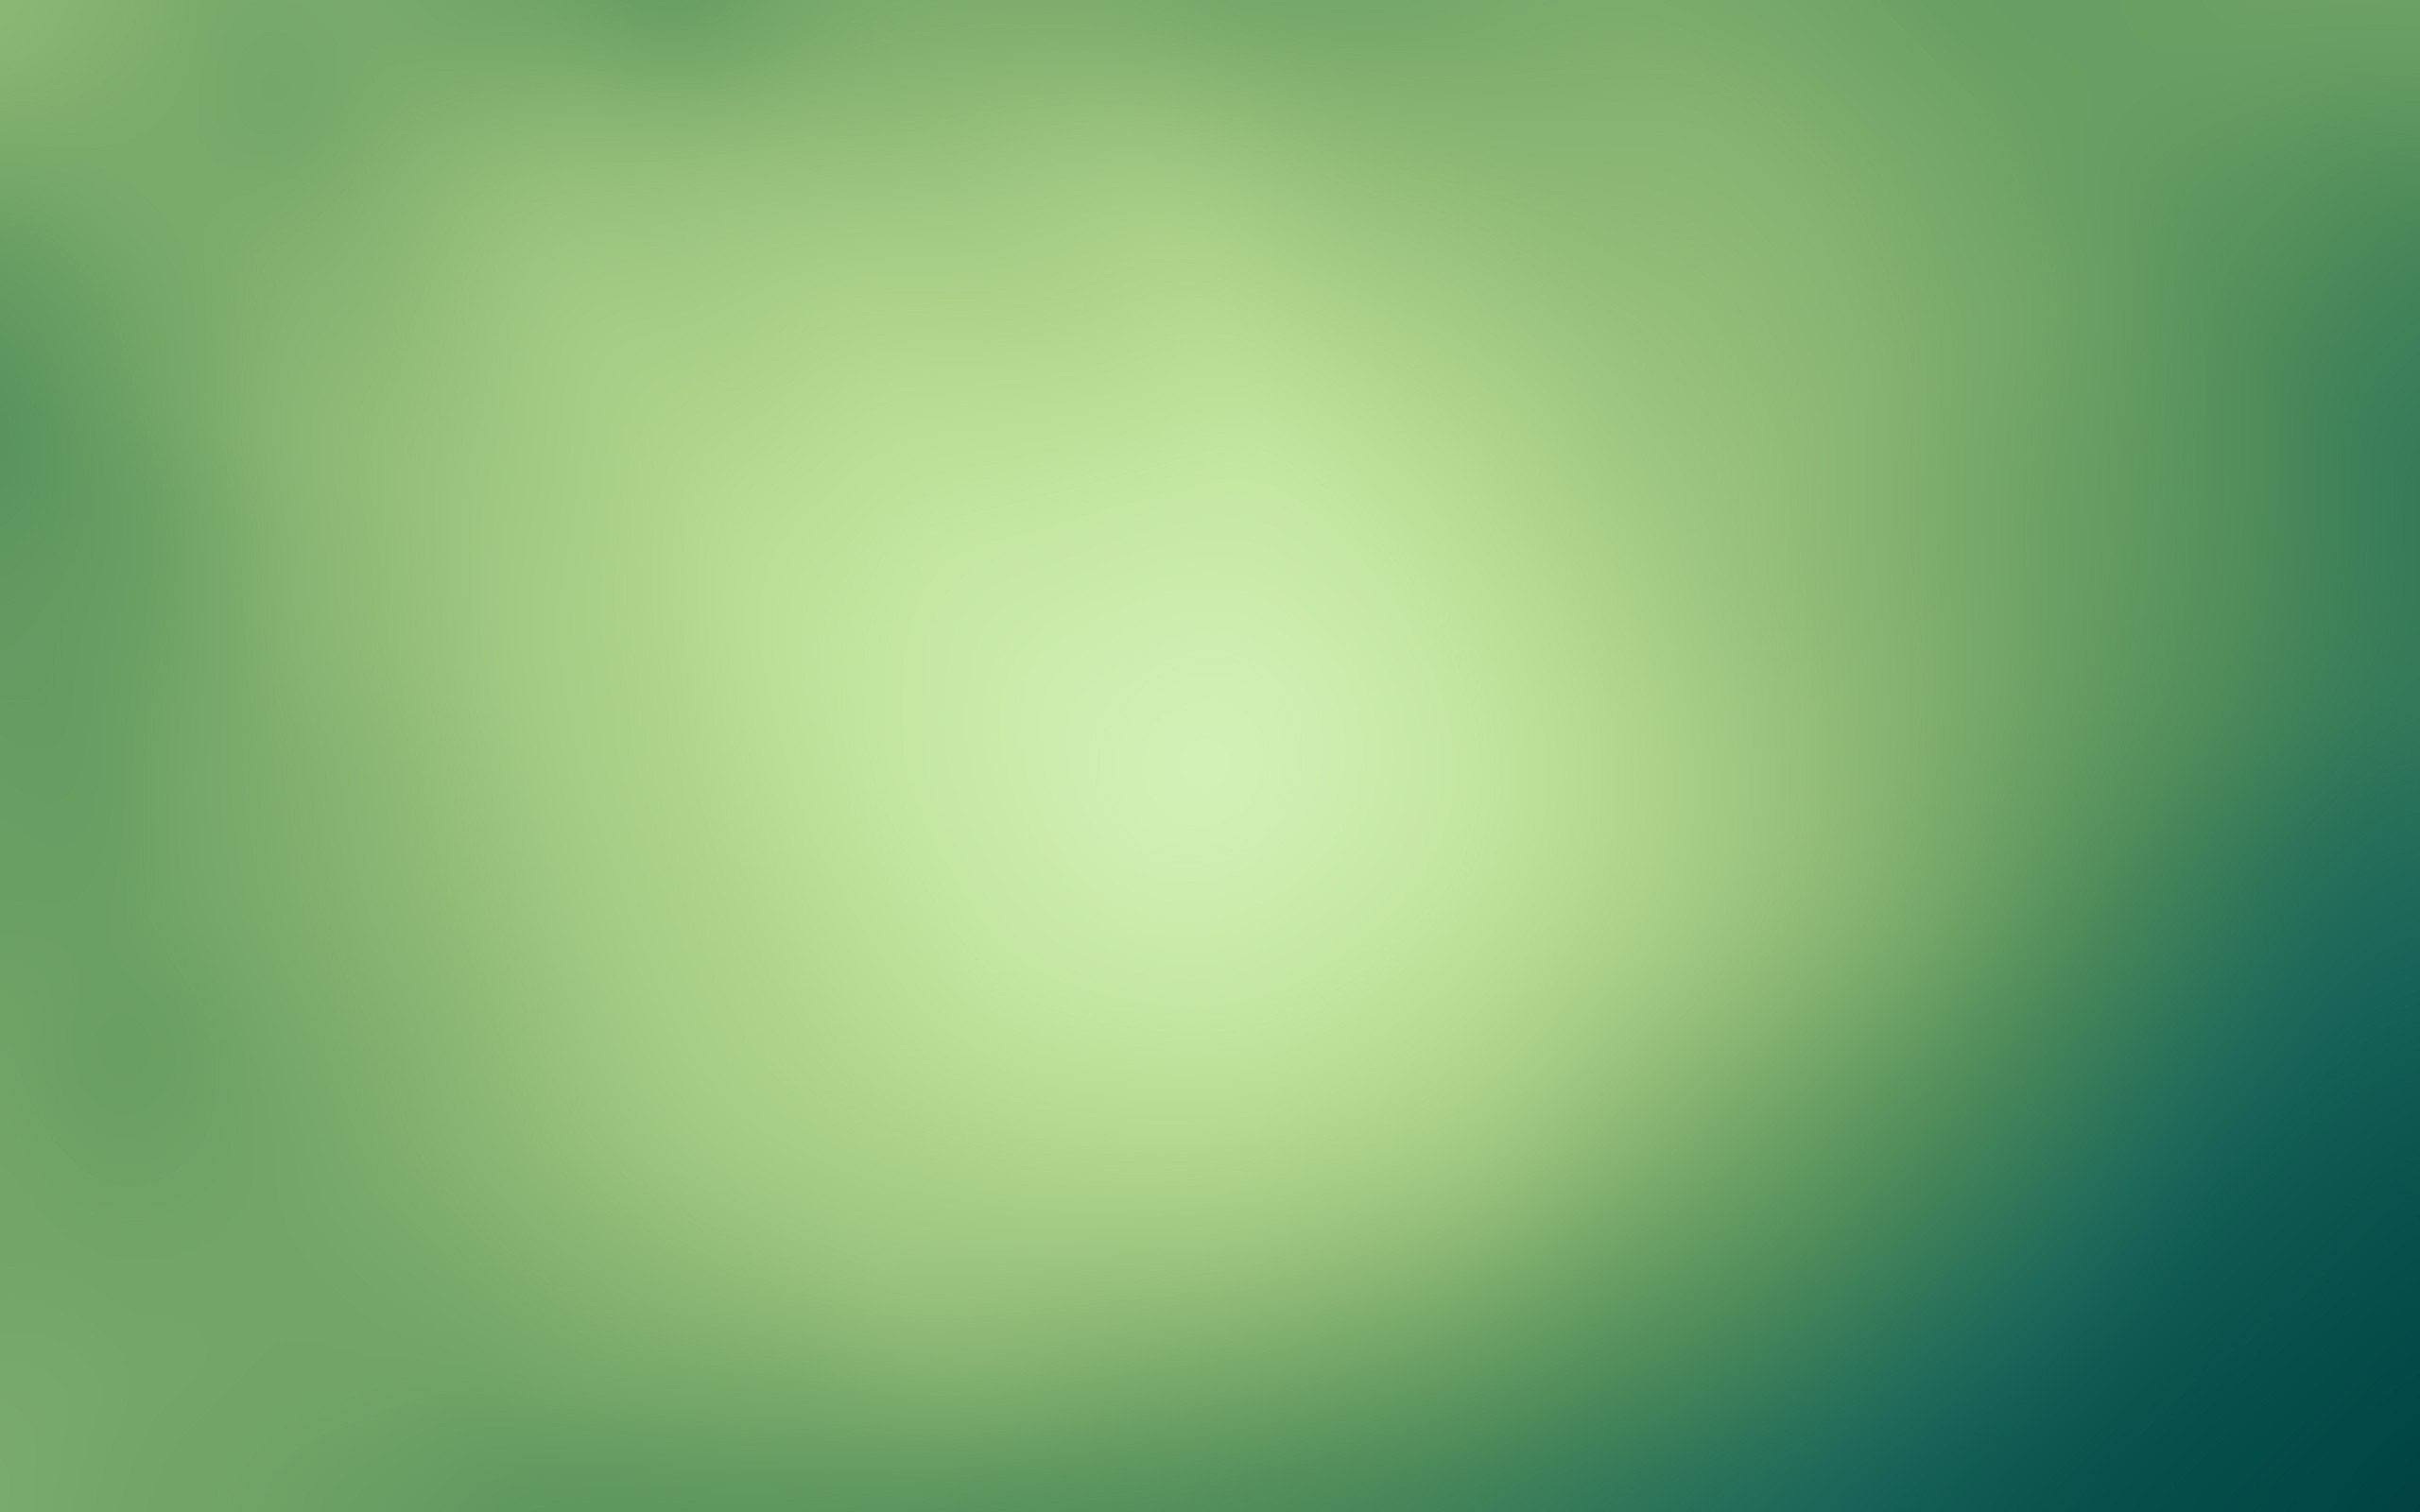 Mint Green Background 1 Download Free Stunning HD Backgrounds For